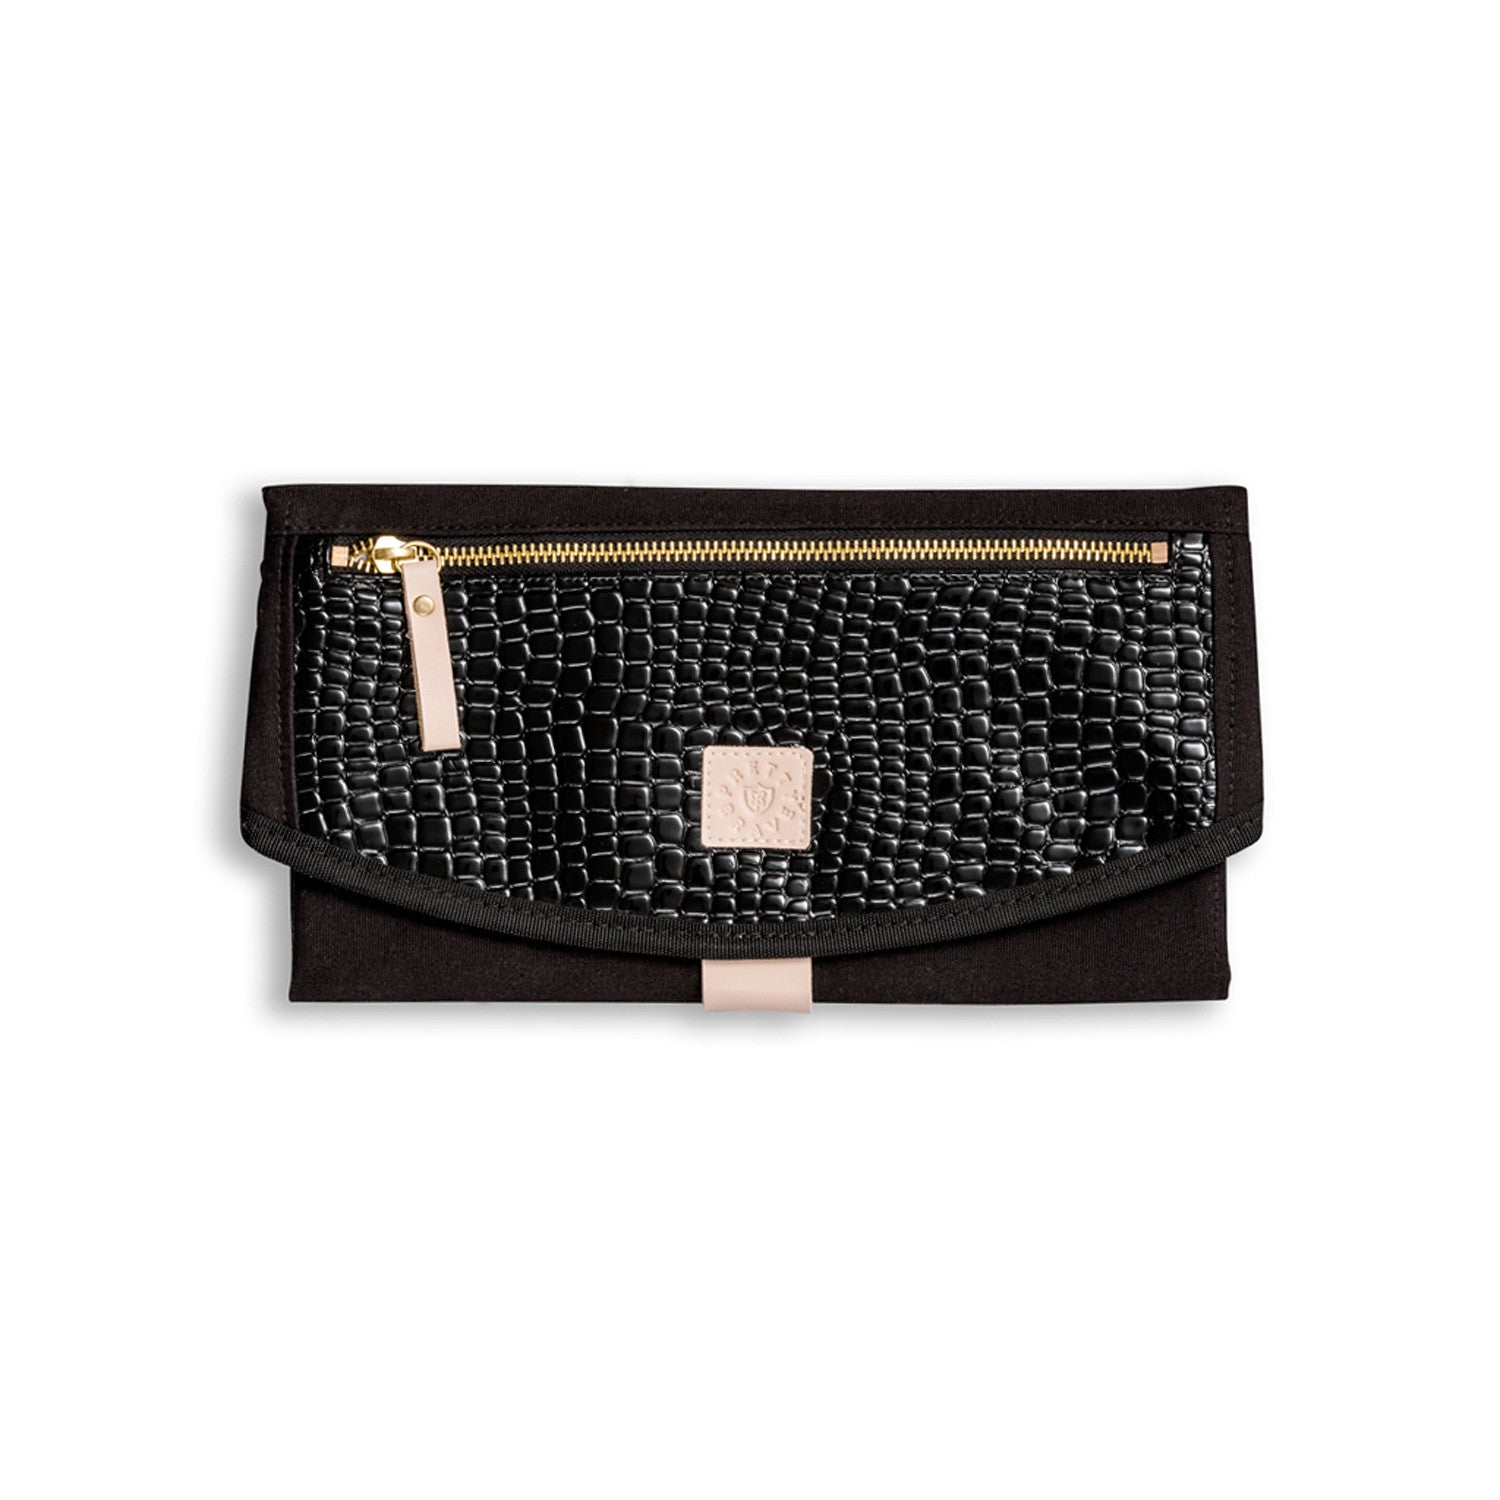 The Round-About Nappy Clutch Black Croc